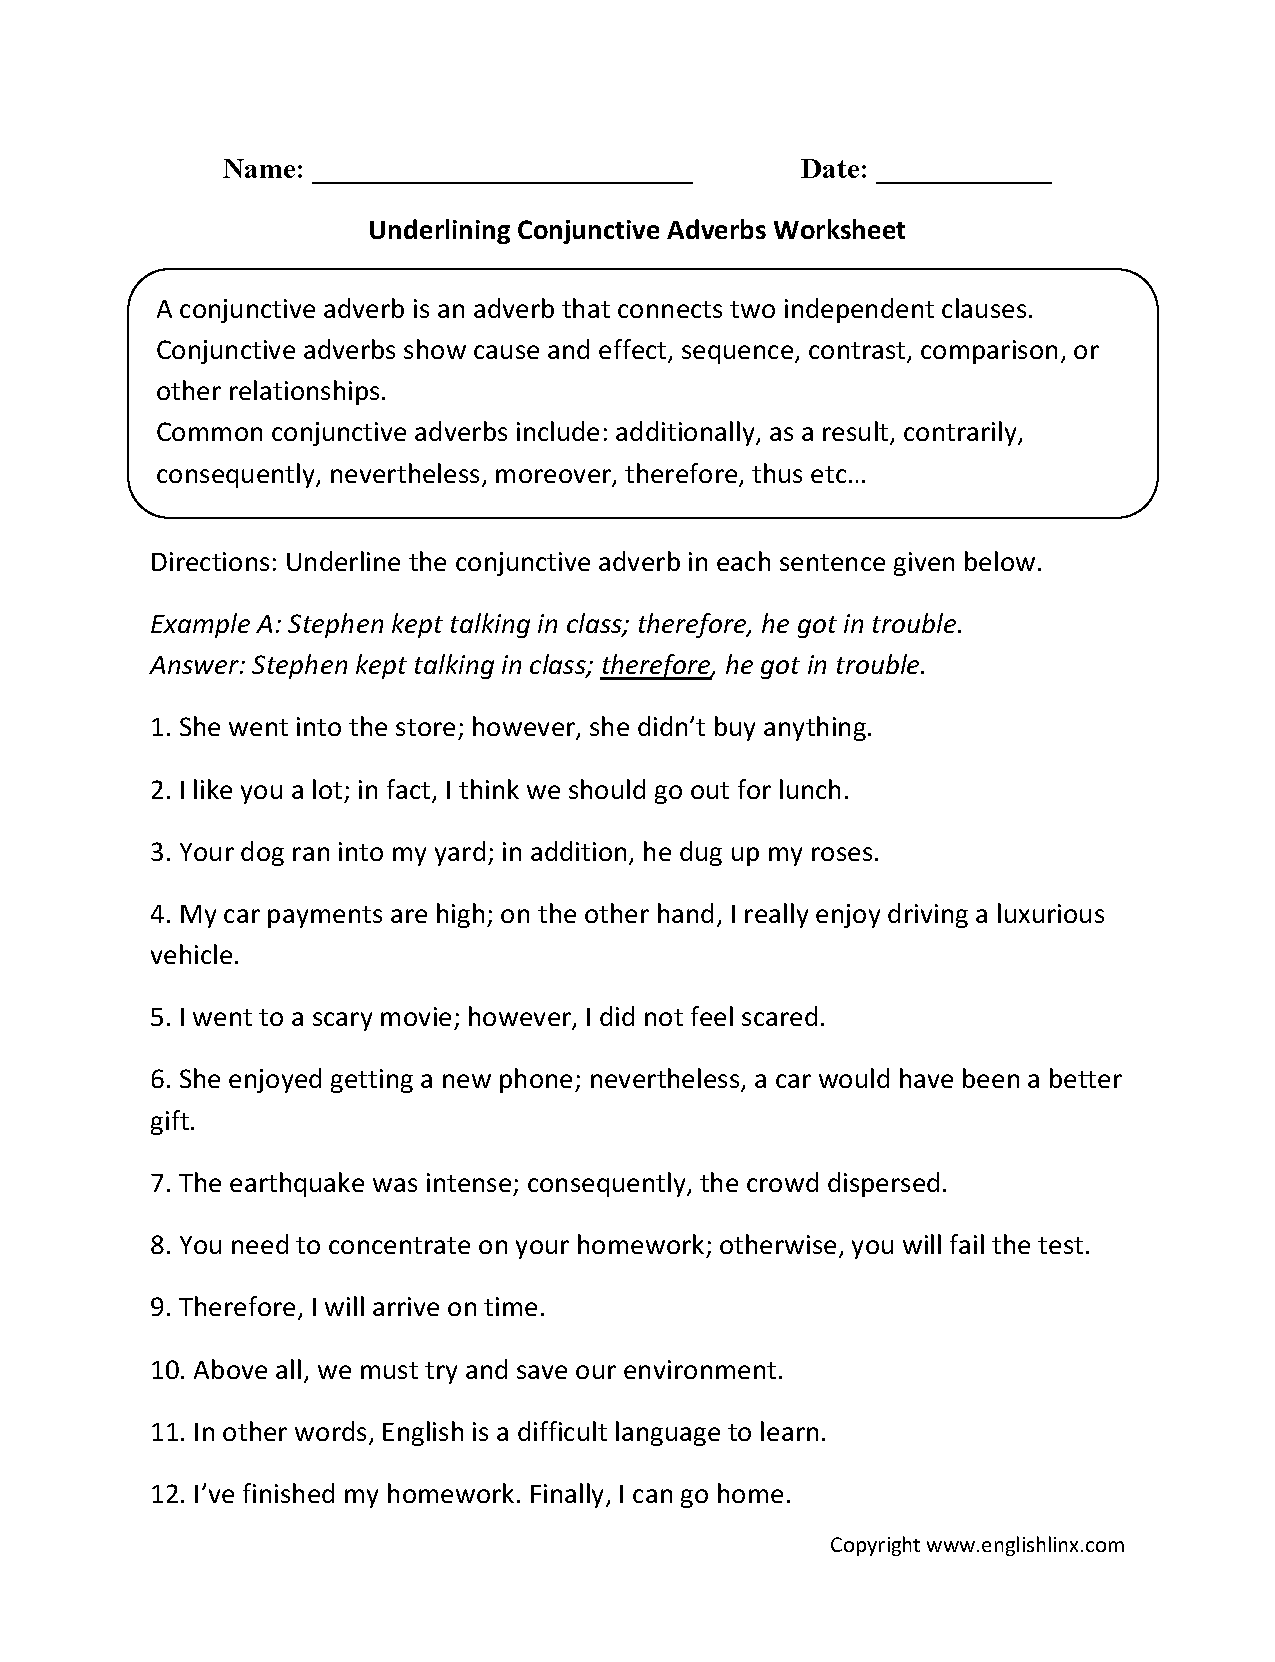 Aldiablosus  Pleasing Englishlinxcom  Conjunctions Worksheets With Exciting Worksheet With Awesome What Is The Title Of This Picture Math Worksheet Also Protein Worksheet In Addition Writing Linear Equations Worksheet And W Worksheet As Well As Adding And Subtracting Rational Expressions Worksheet Additionally Rotations Worksheet From Englishlinxcom With Aldiablosus  Exciting Englishlinxcom  Conjunctions Worksheets With Awesome Worksheet And Pleasing What Is The Title Of This Picture Math Worksheet Also Protein Worksheet In Addition Writing Linear Equations Worksheet From Englishlinxcom